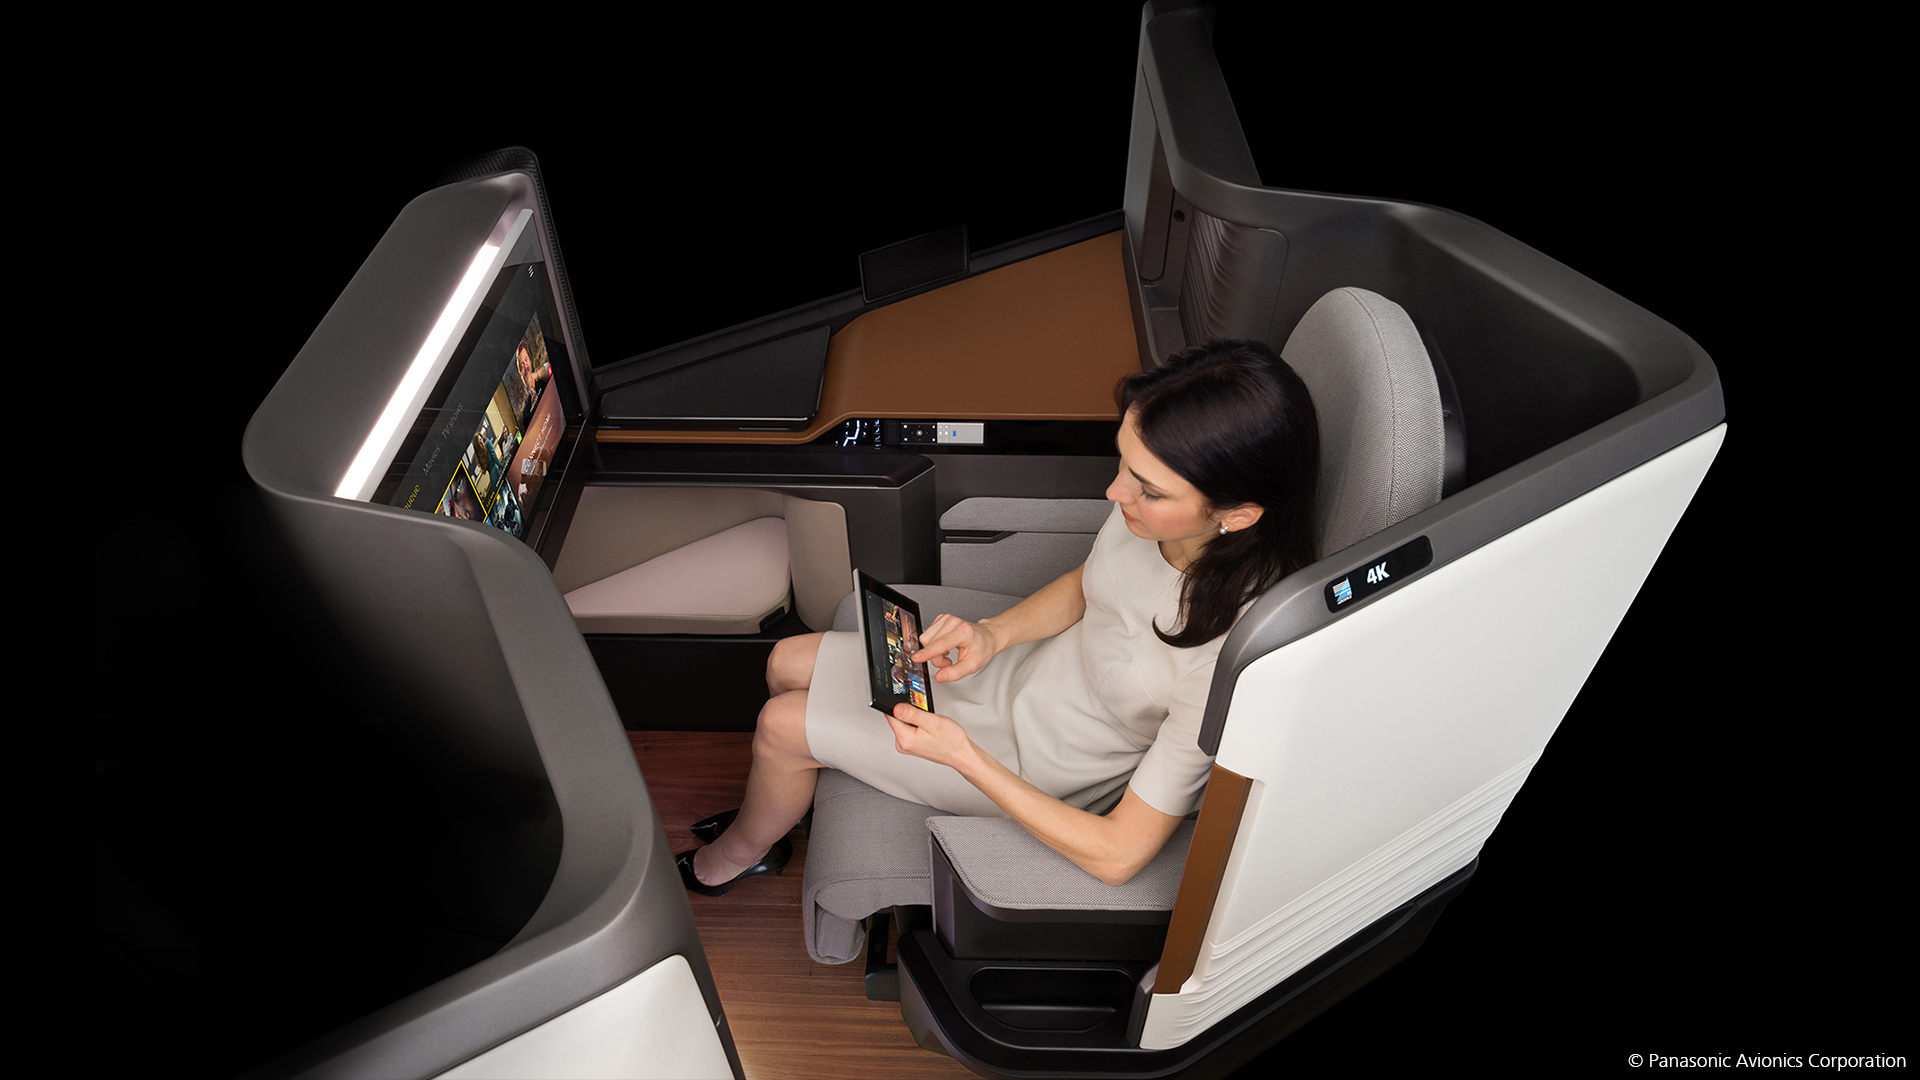 Panasonic Avionics' Waterfront seating system includes a wireless IFE controller. Photo: Panasonic Avionics